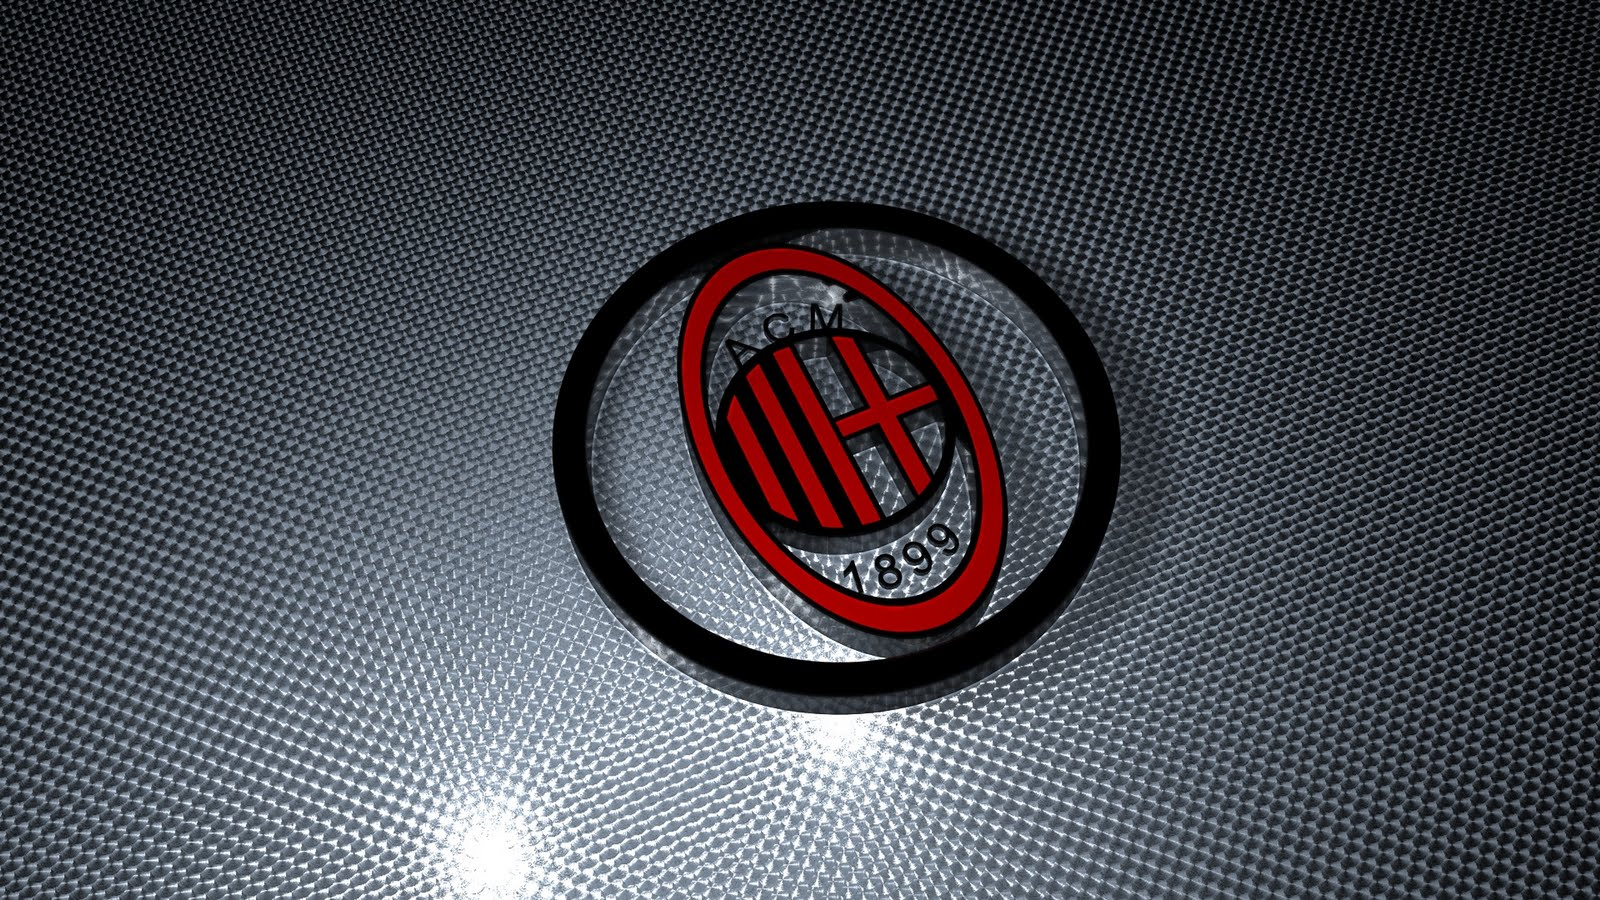 Download Ac Milan Wallpaper Logo pictures in high definition or 1600x900